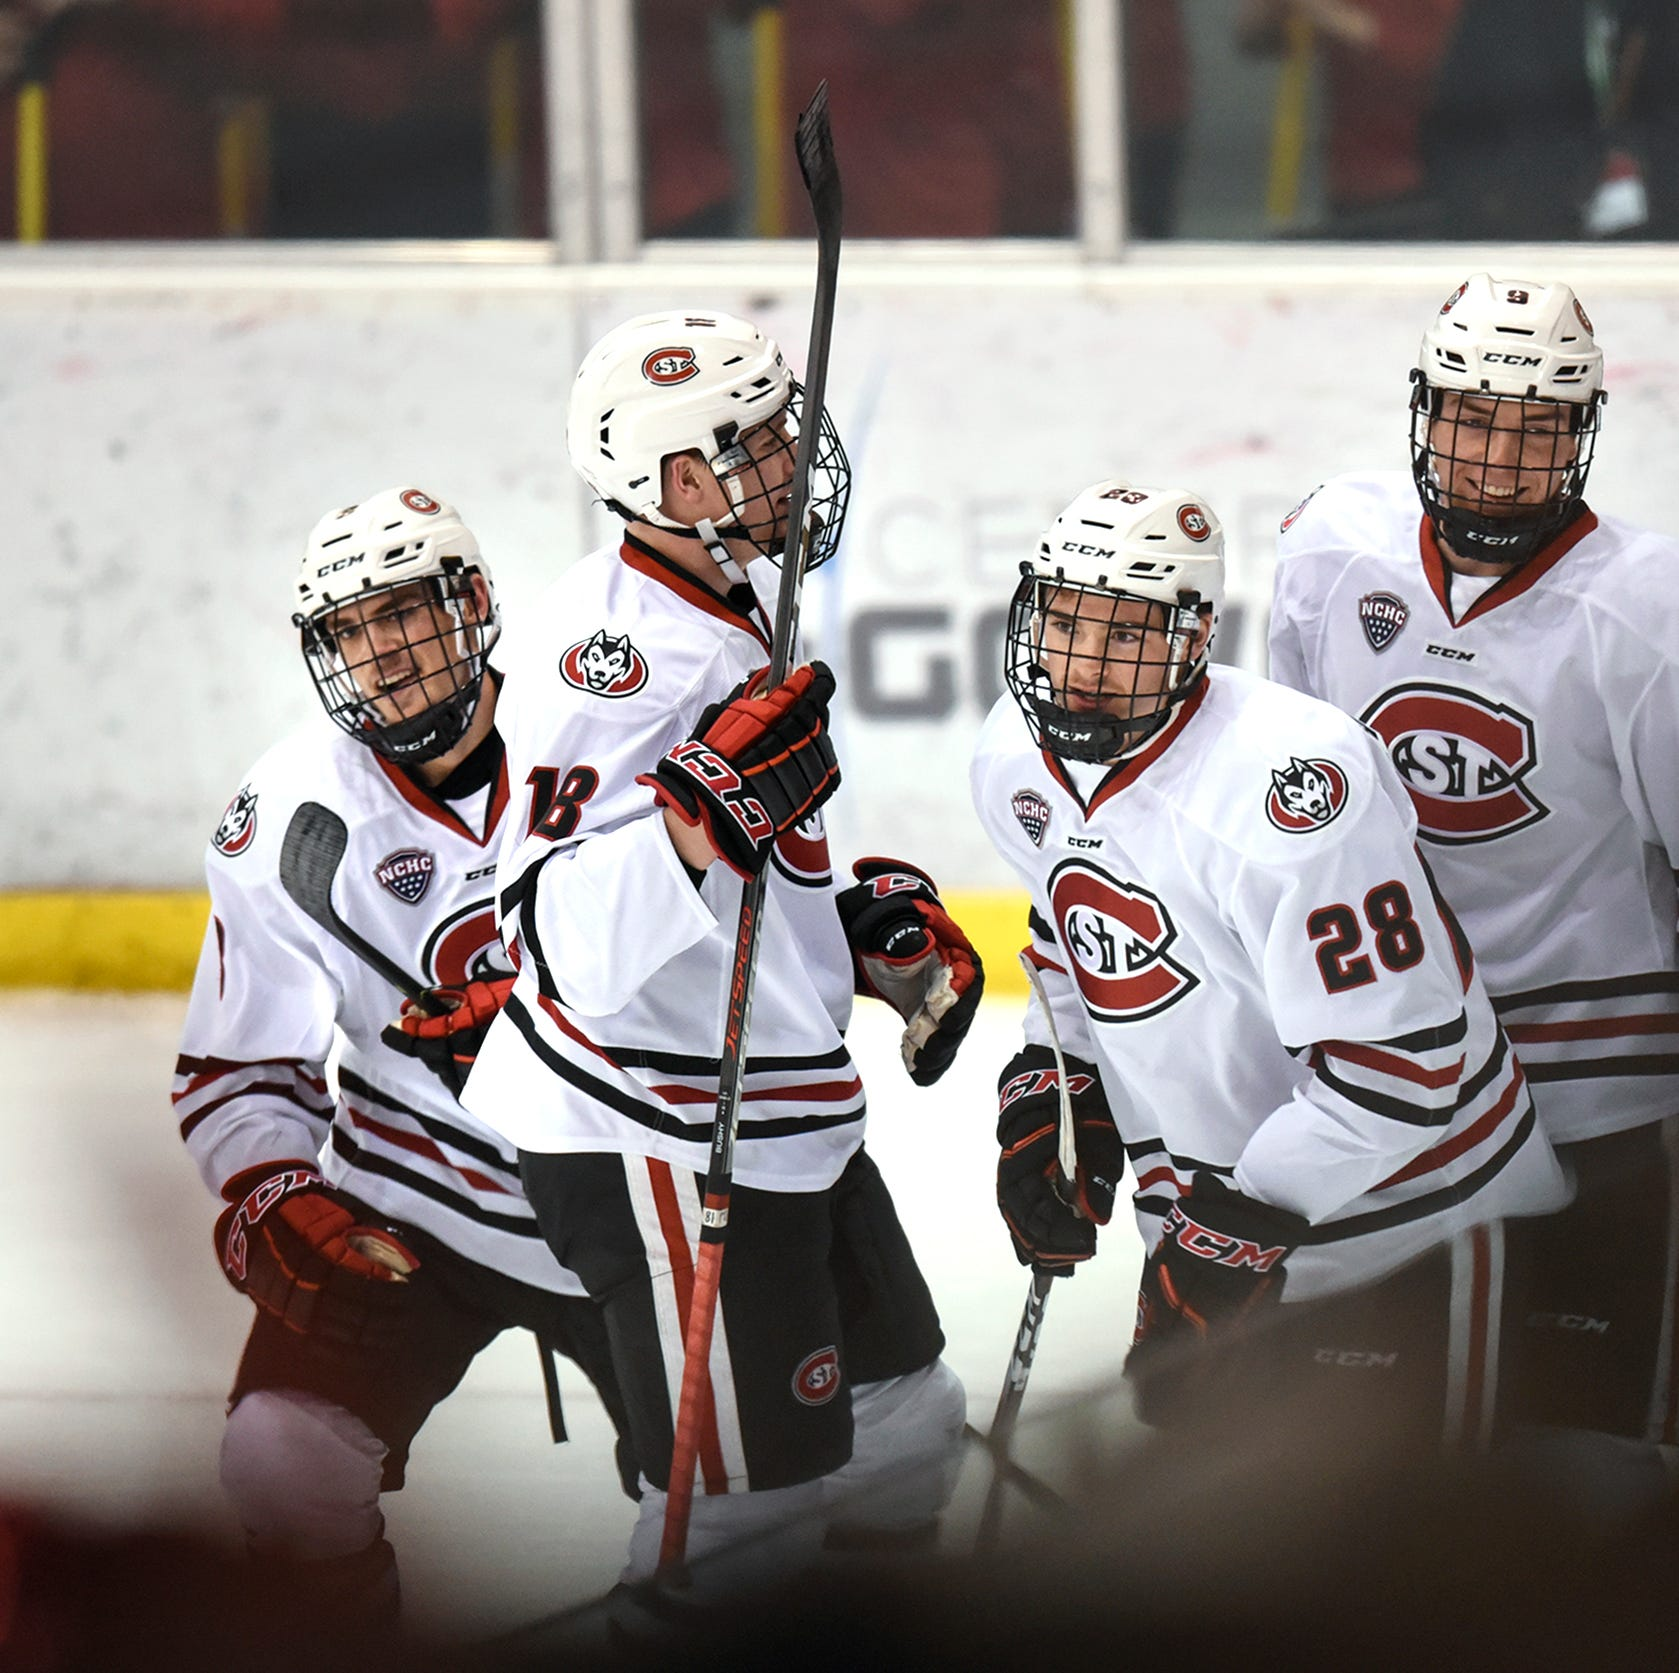 St. Cloud State Huskies sweep Bemidji State Beavers; win sixth in a row